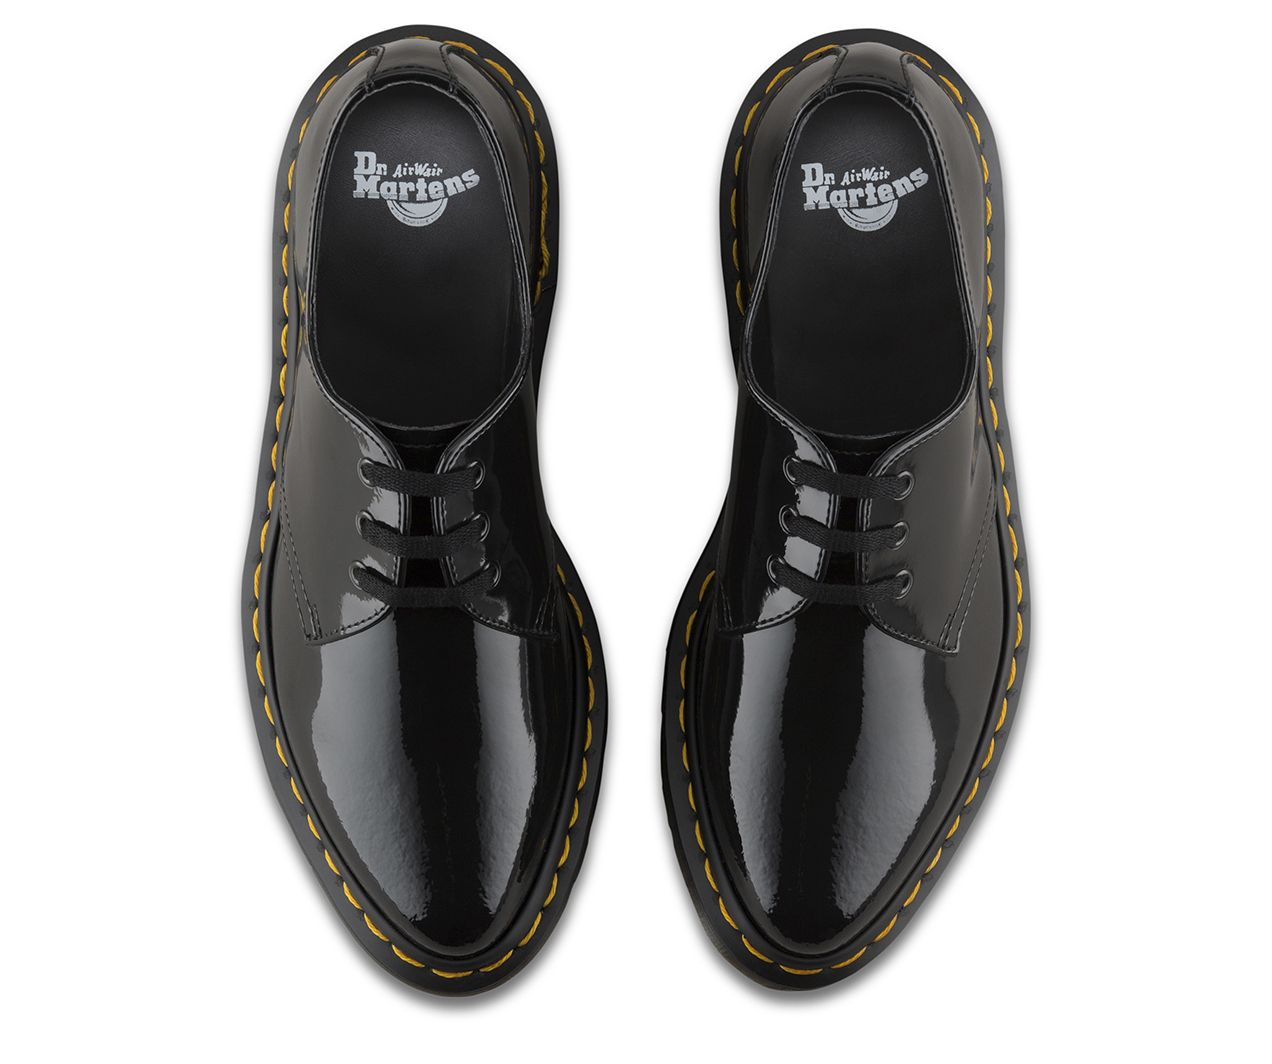 DR MARTENS DUPREE PATENT | Leather slip